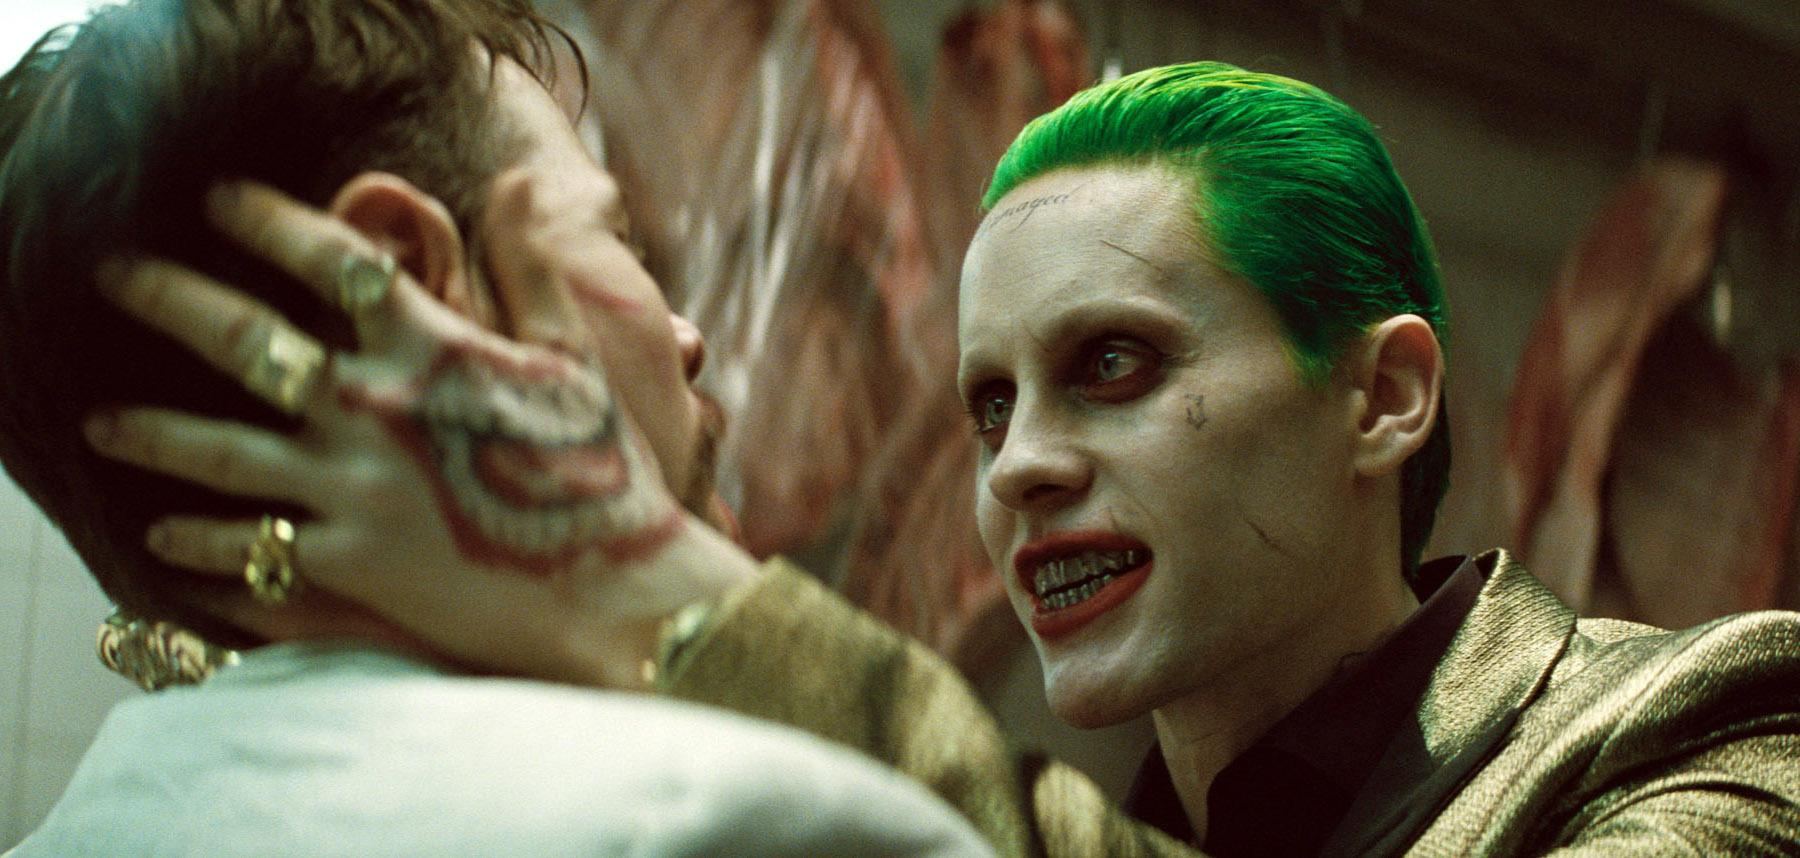 Jared Leto as the Joker a scene from Suicide Squad.